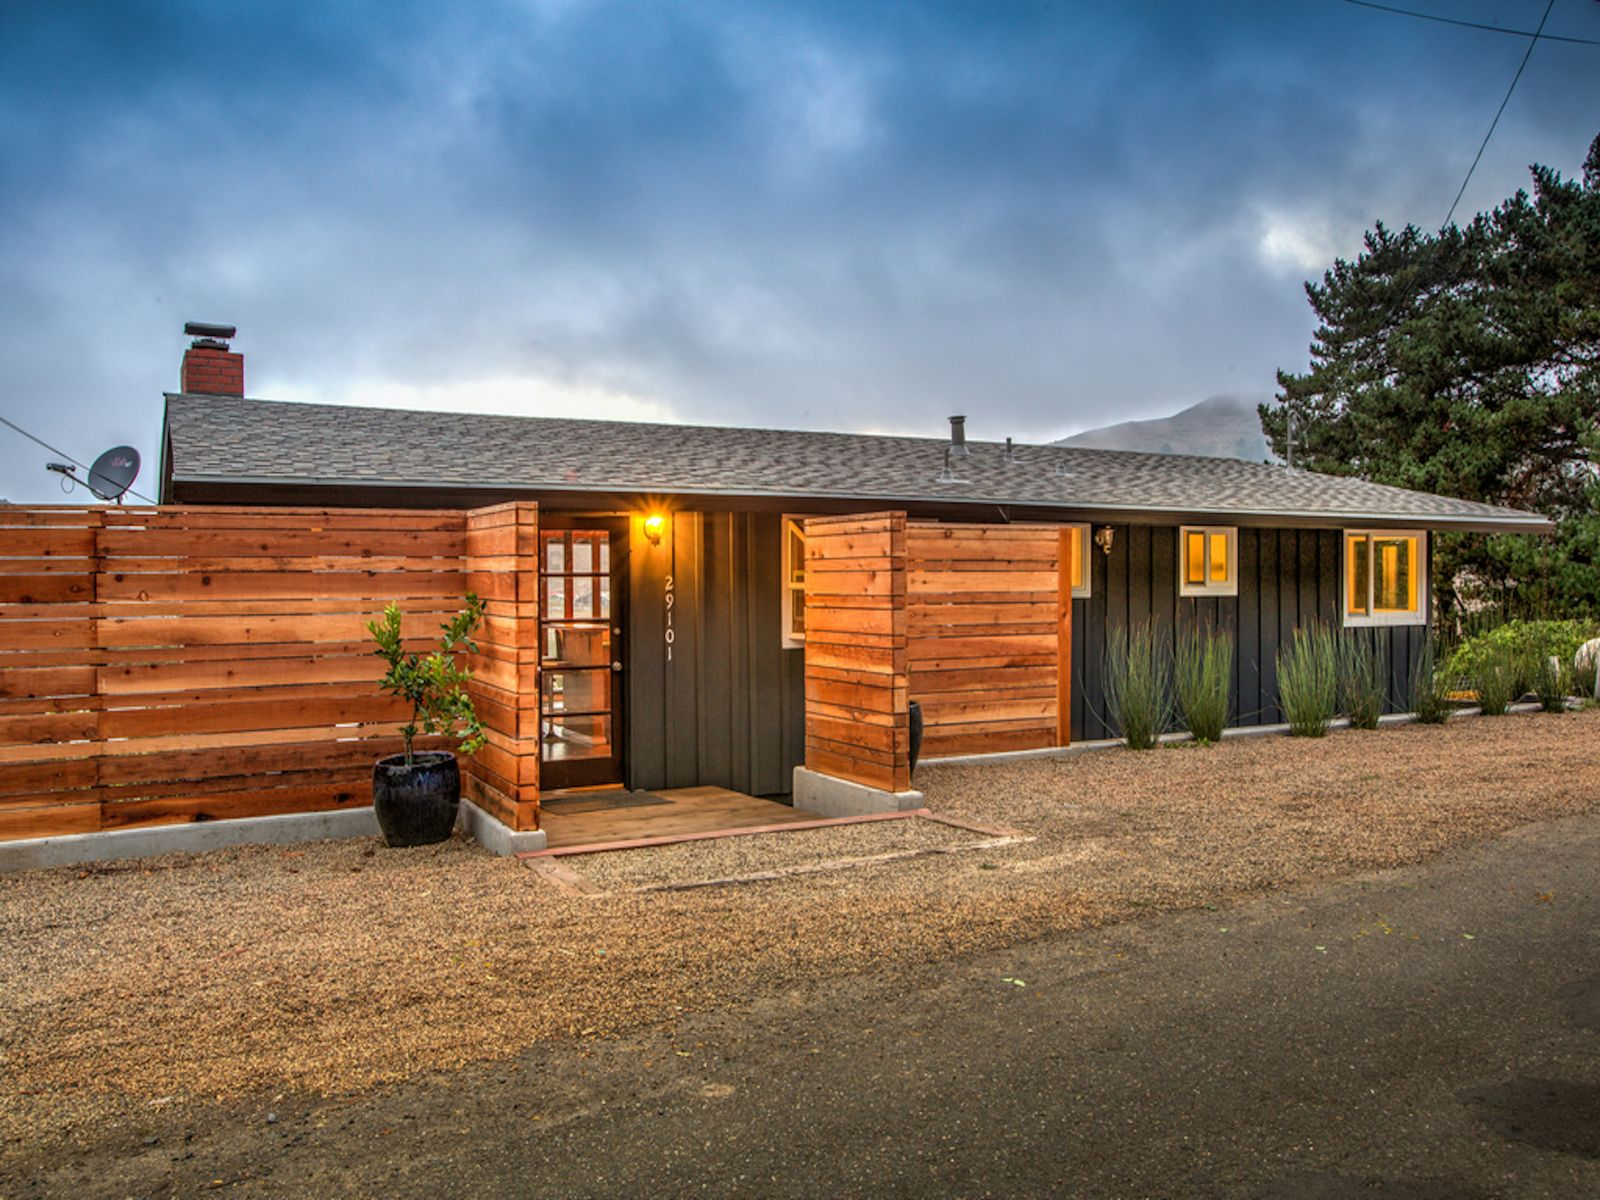 mobile homes for sale in napa california with 0243685 on silveradoproperties further 321248 Need I T Help together with CalistogaSpringsMobileHome munity also Pid 18162634 in addition Napa Valley Hotels Solage Calistoga h1640078.